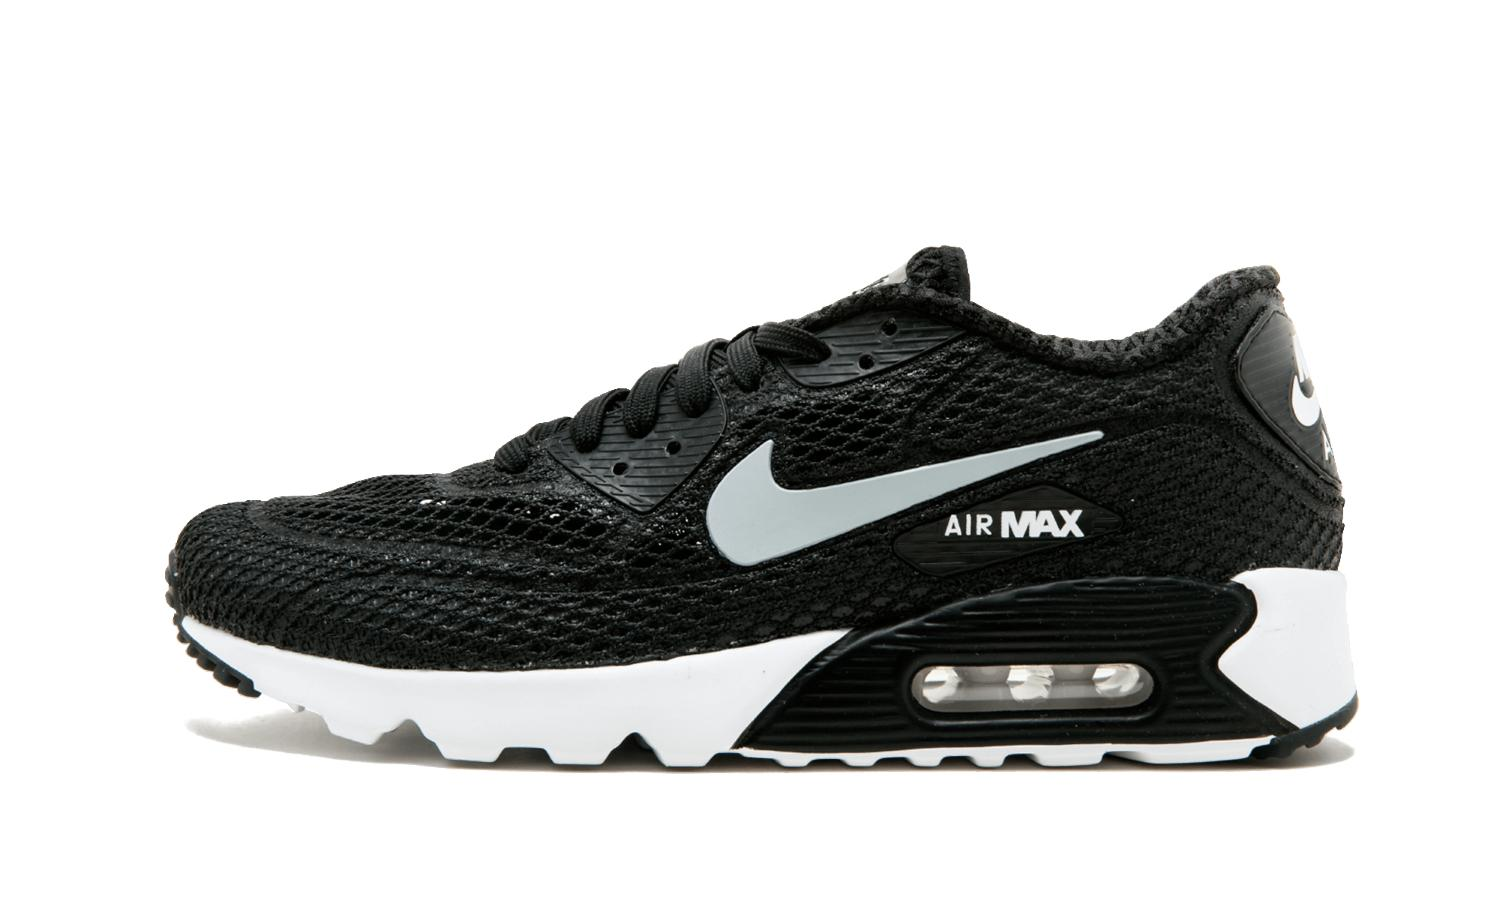 eb5f75d0f6 Gallery. Previously sold at: Jet.com · Men's Air Max 90 Sneakers Men's Nike  ...